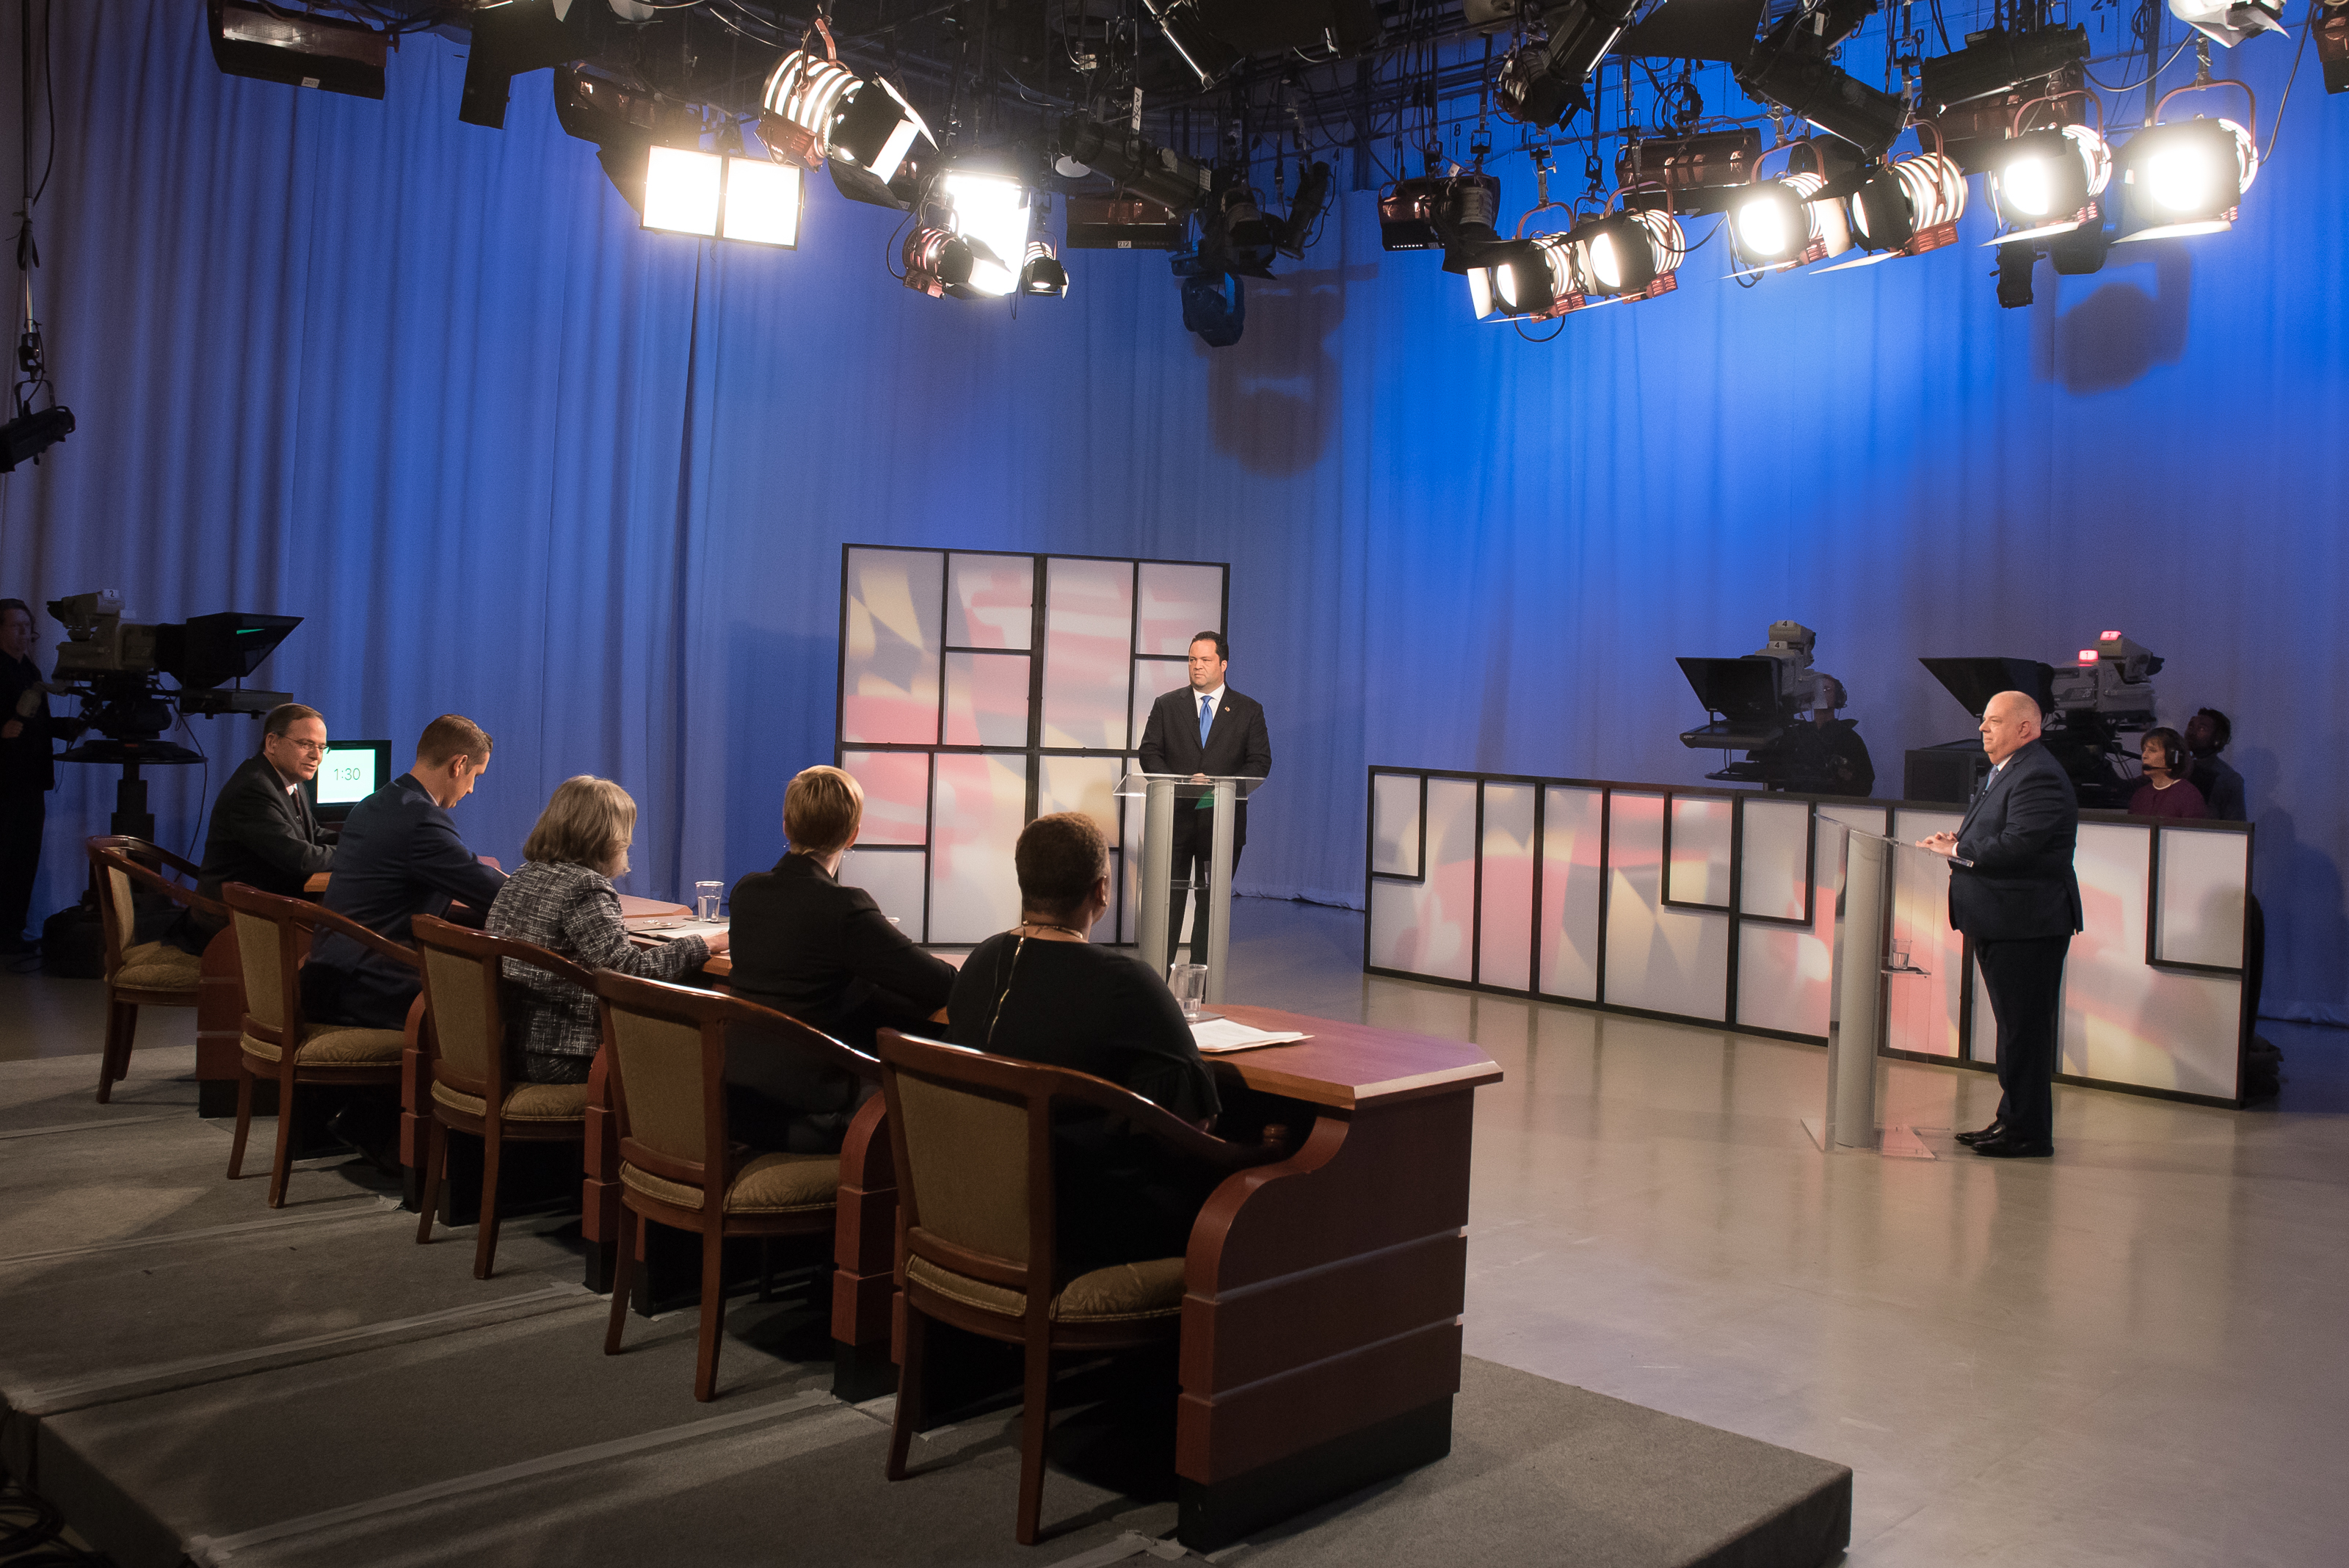 Win, lose or draw: Debate commentary by Lazarick, Vatz, Eberly, Raettig, Griffith